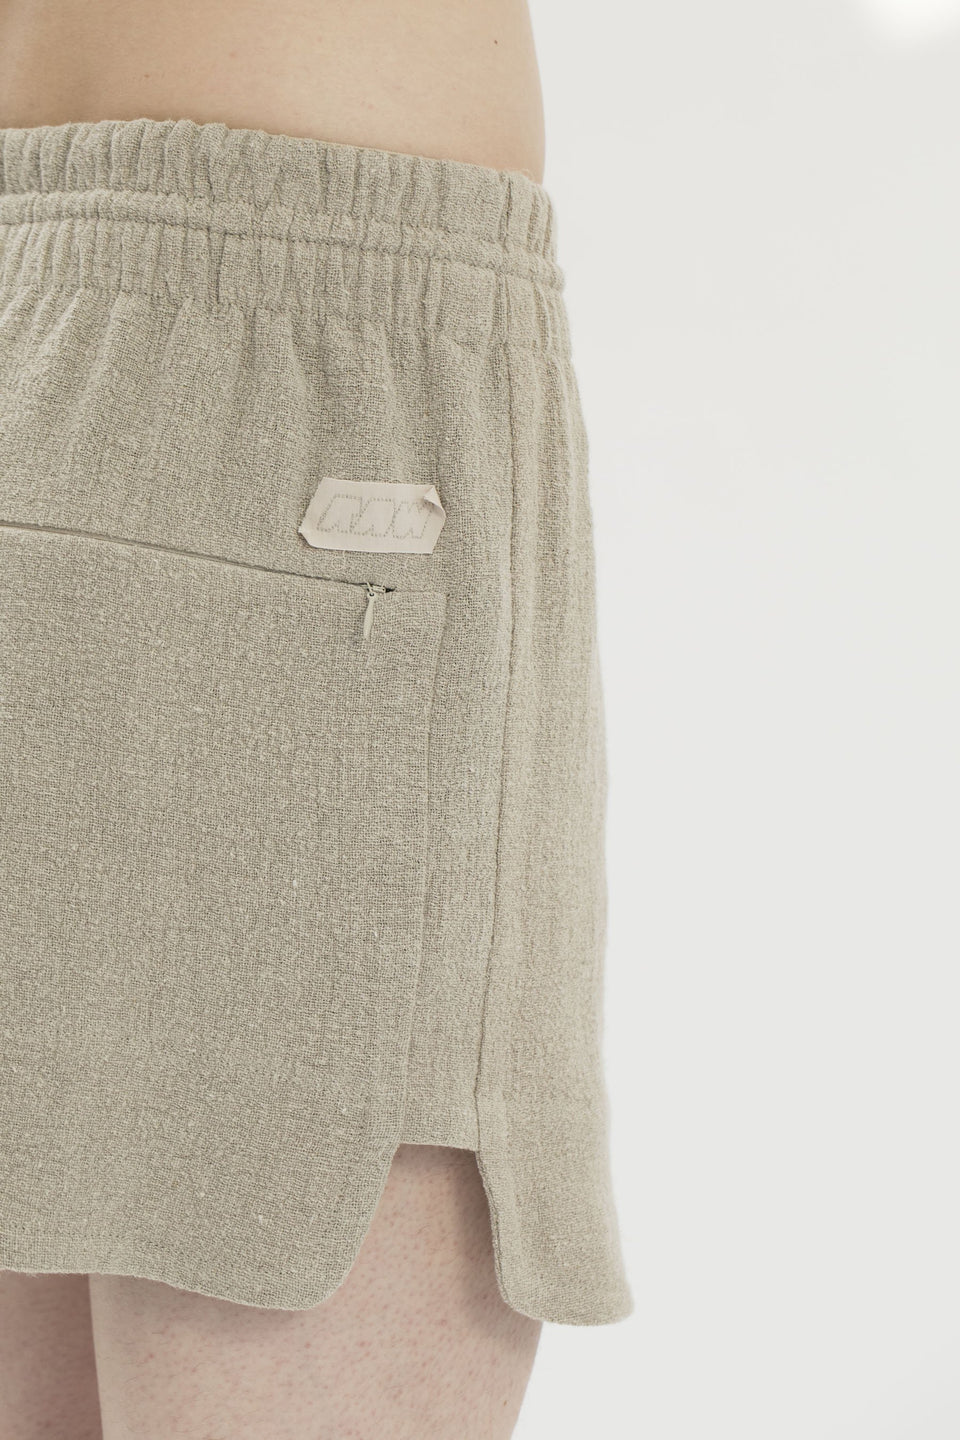 RAW Men Running Shorts Natural (sample) S-M